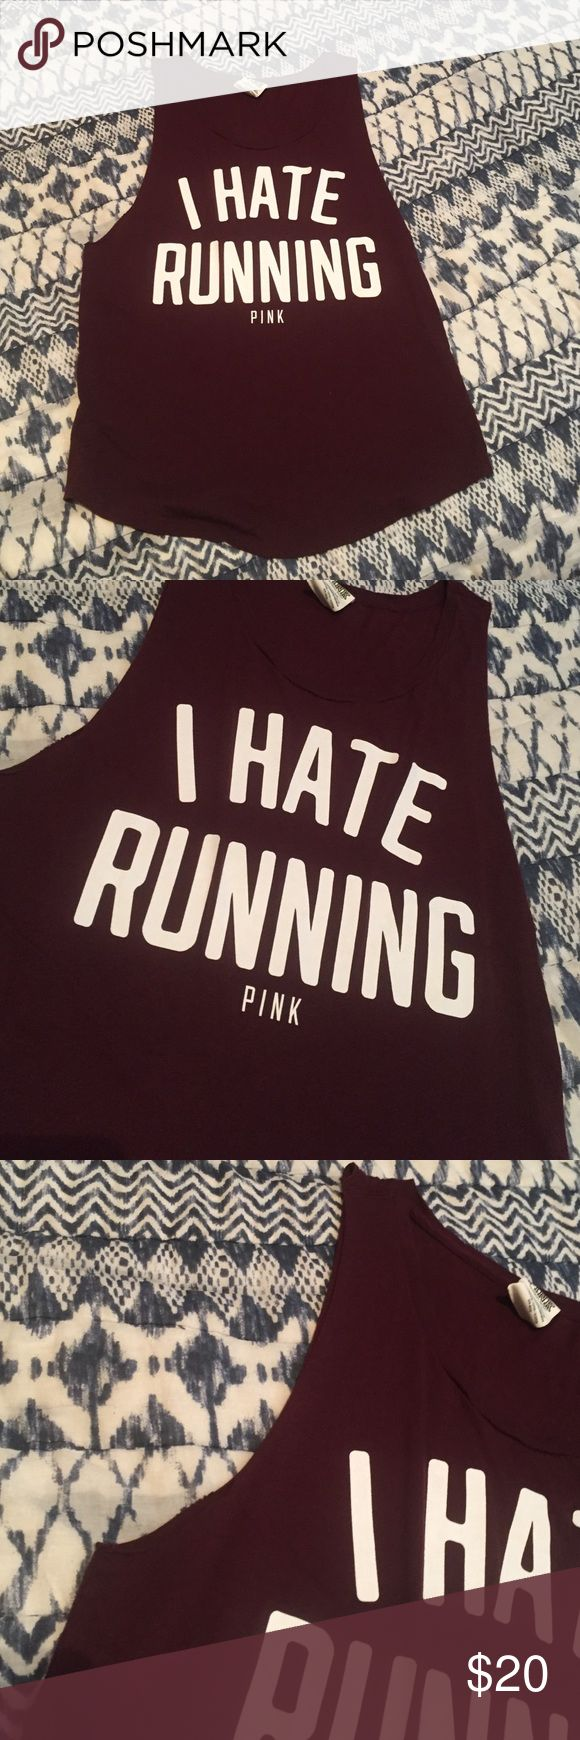 "I hate running tank • New without tags • Maroon tank with white text "" I HATE RUNNING "" • Cutout tank from Victoria's Secret PINK • PINK Victoria's Secret Tops Tank Tops"